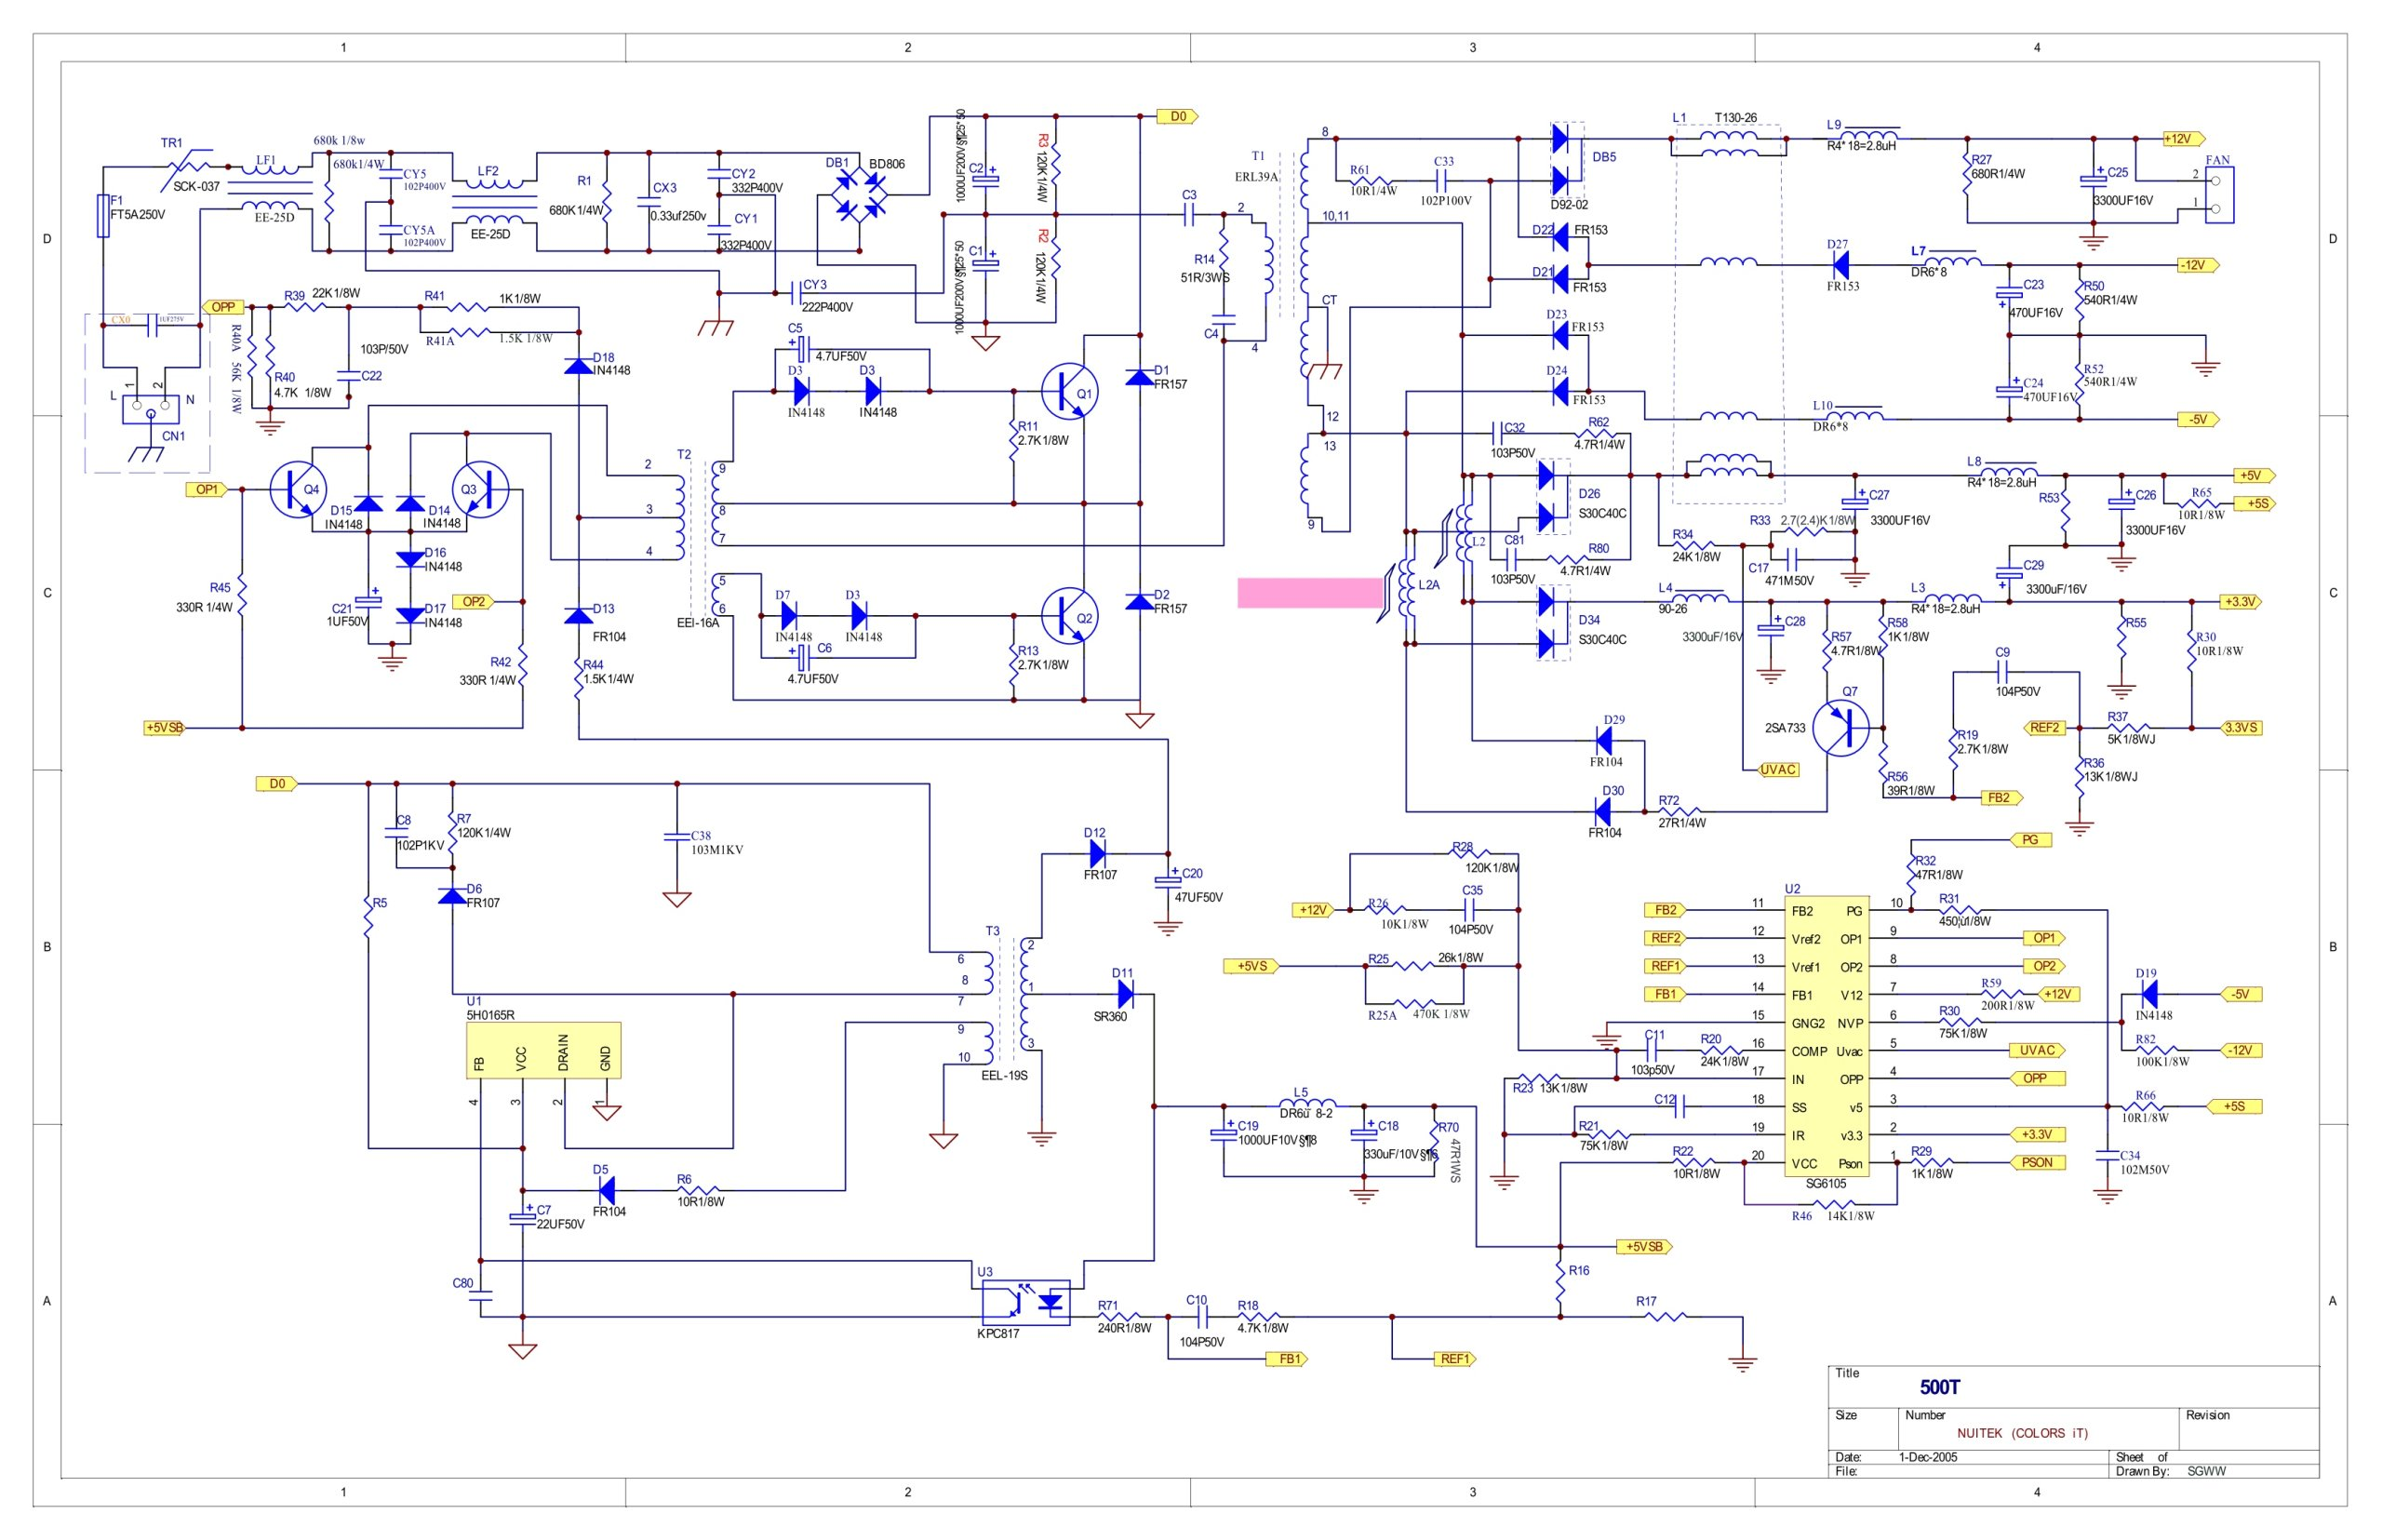 New Circuits Page Next Gr Isolating Atx Smps Ka5h0165r Sg6105 Schematic Diagram Images. ignition wiring diagram